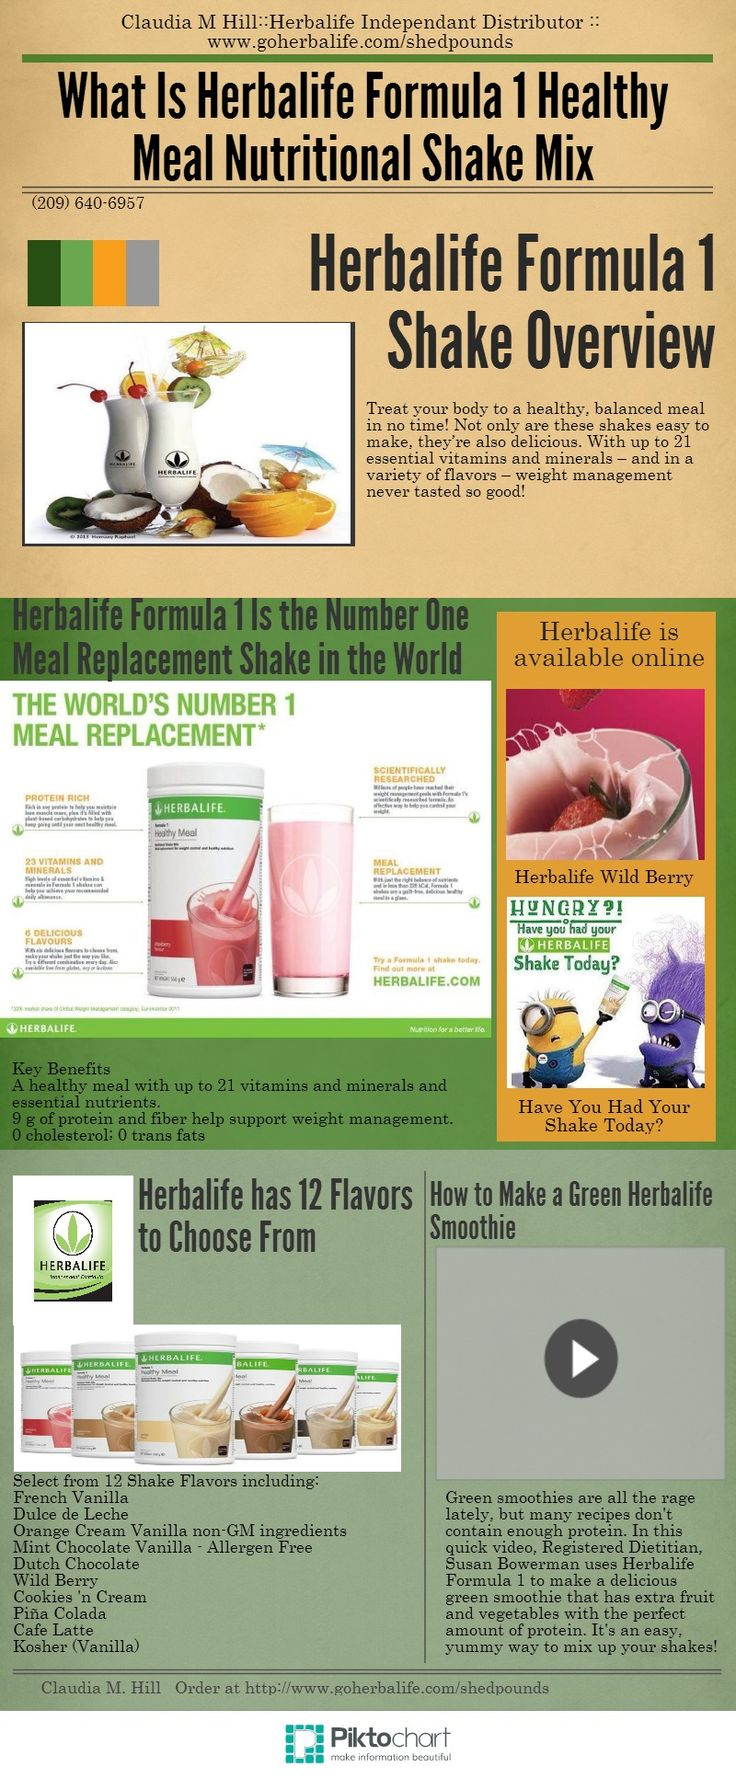 Make your 2016 New Years Resolution of Health Today!  Herbalife Formula 1 Healthy Meal Nutritional Shake Mix is a great addition to any wellness plan.   #formula1shake https://www.goherbalife.com/shedpounds/en-US/Catalog/Weight-Management/Formula-1 #goherbal_life